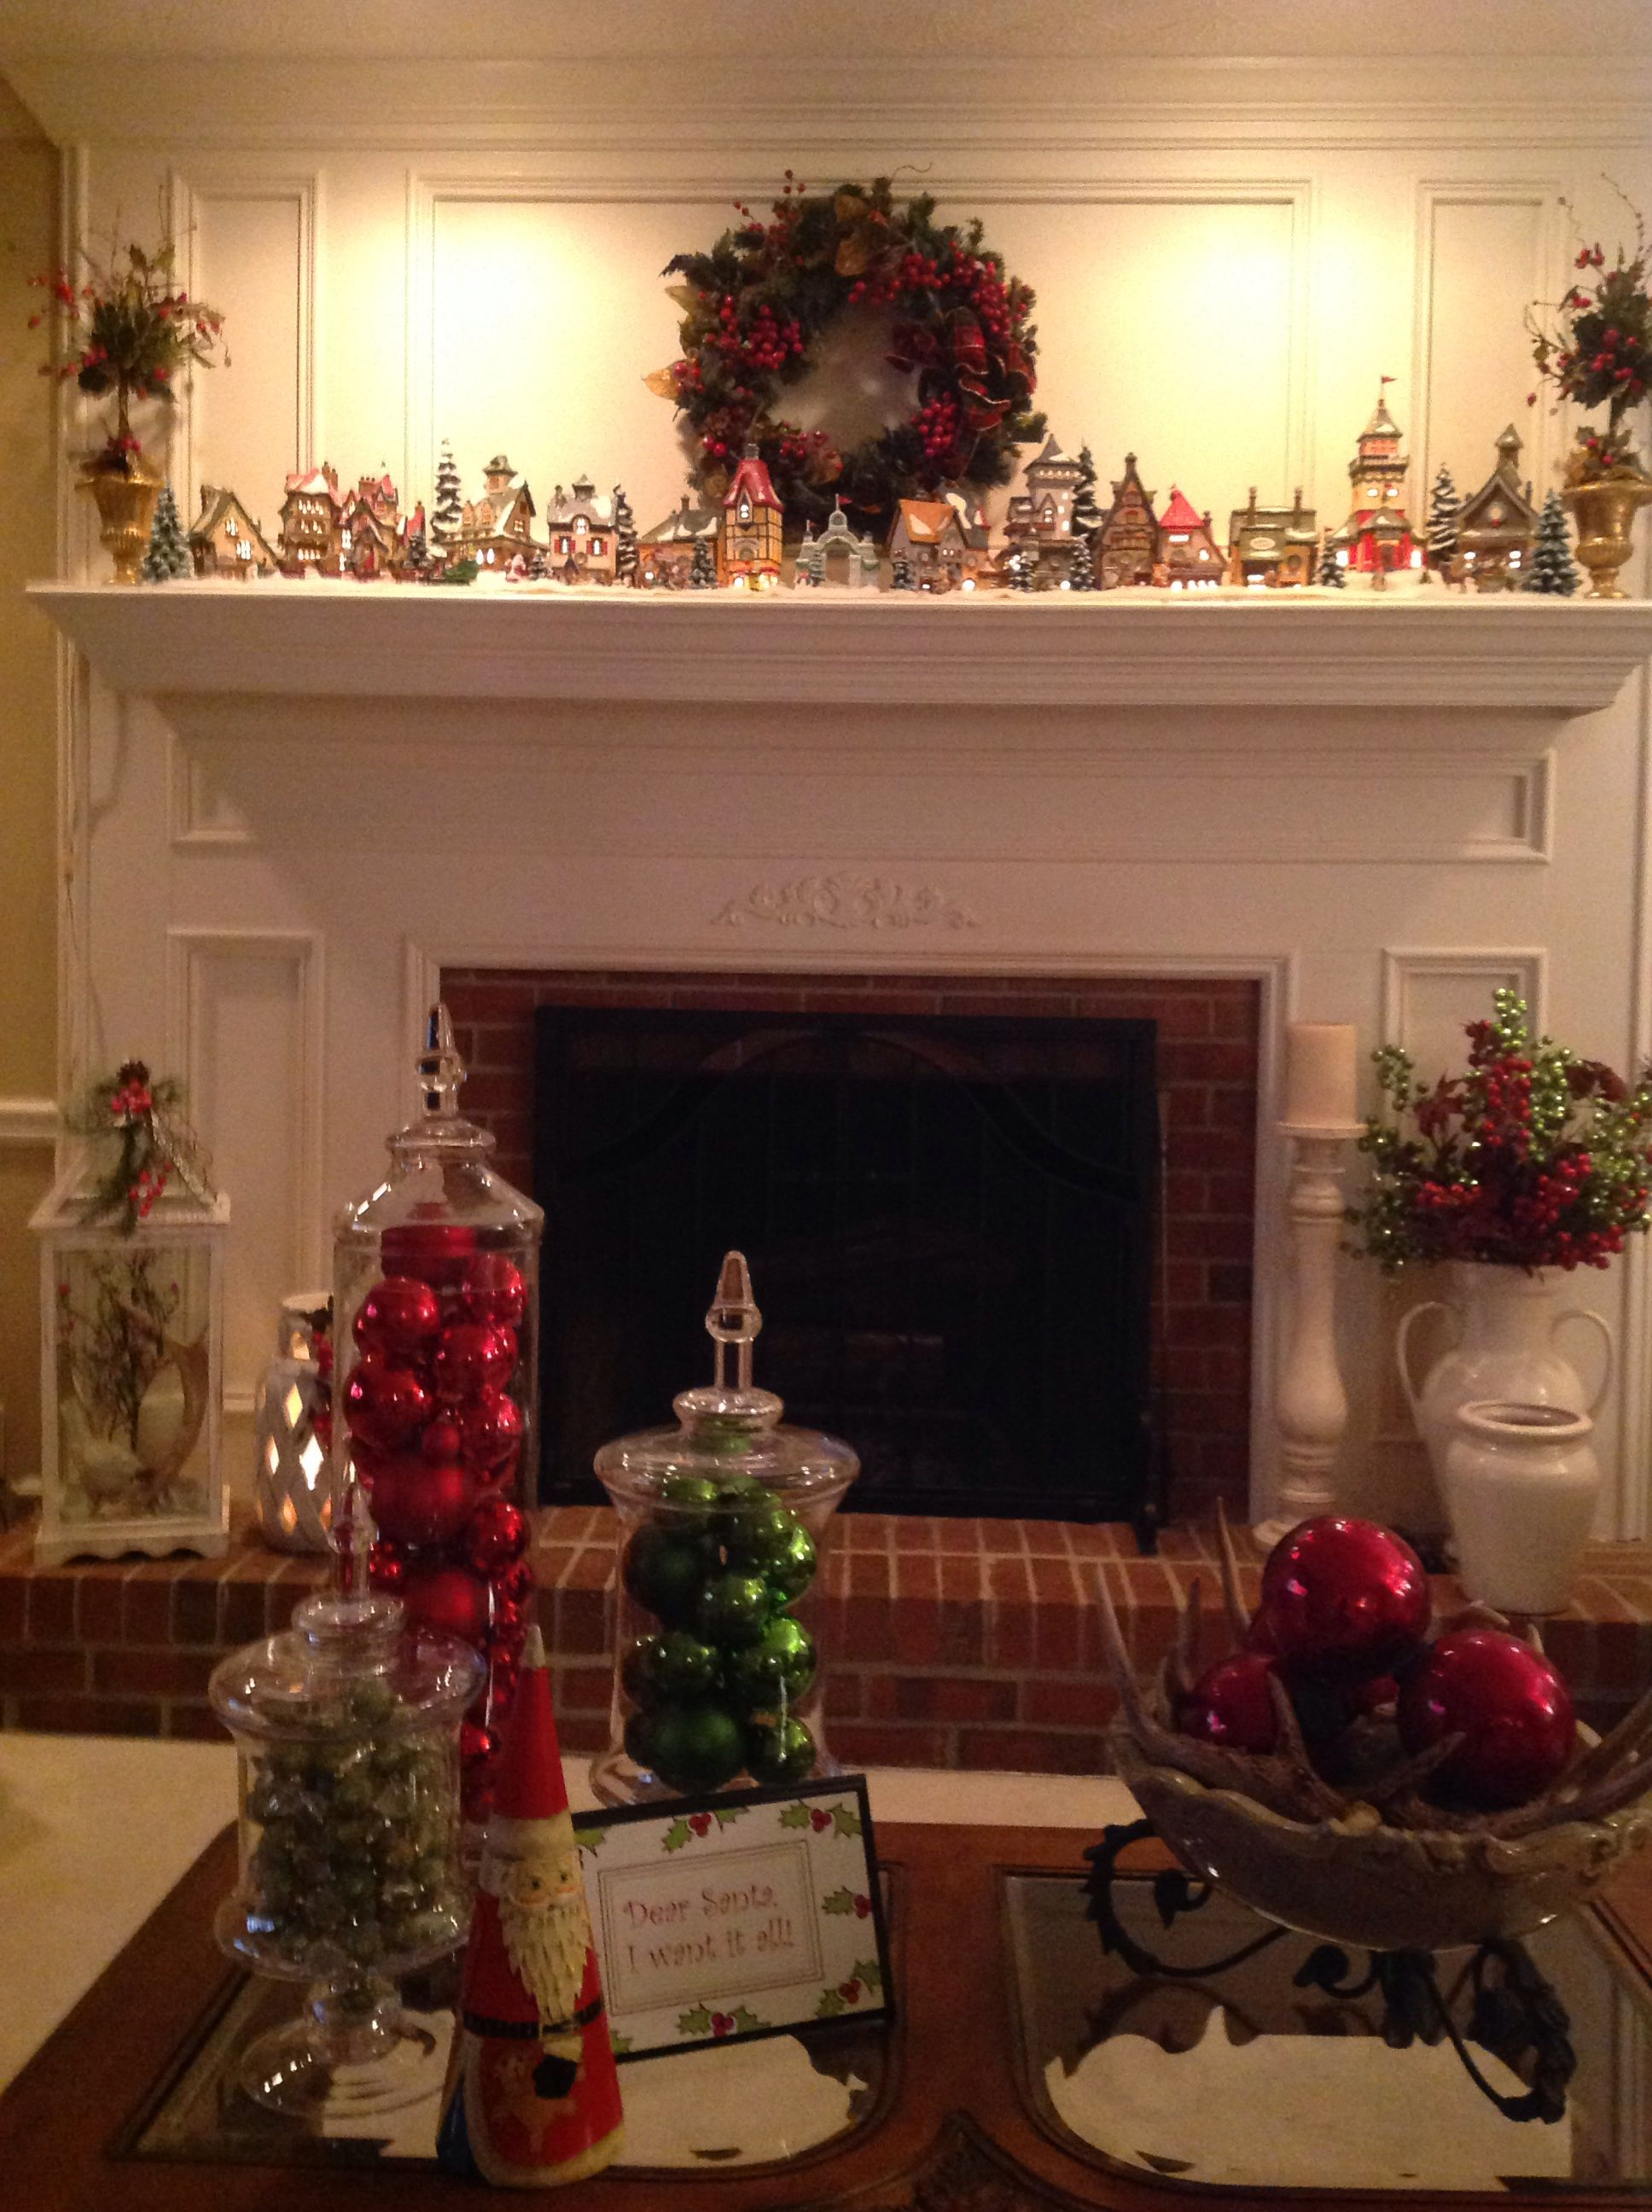 North Pole Village on mantel and lovely decor around the room Love